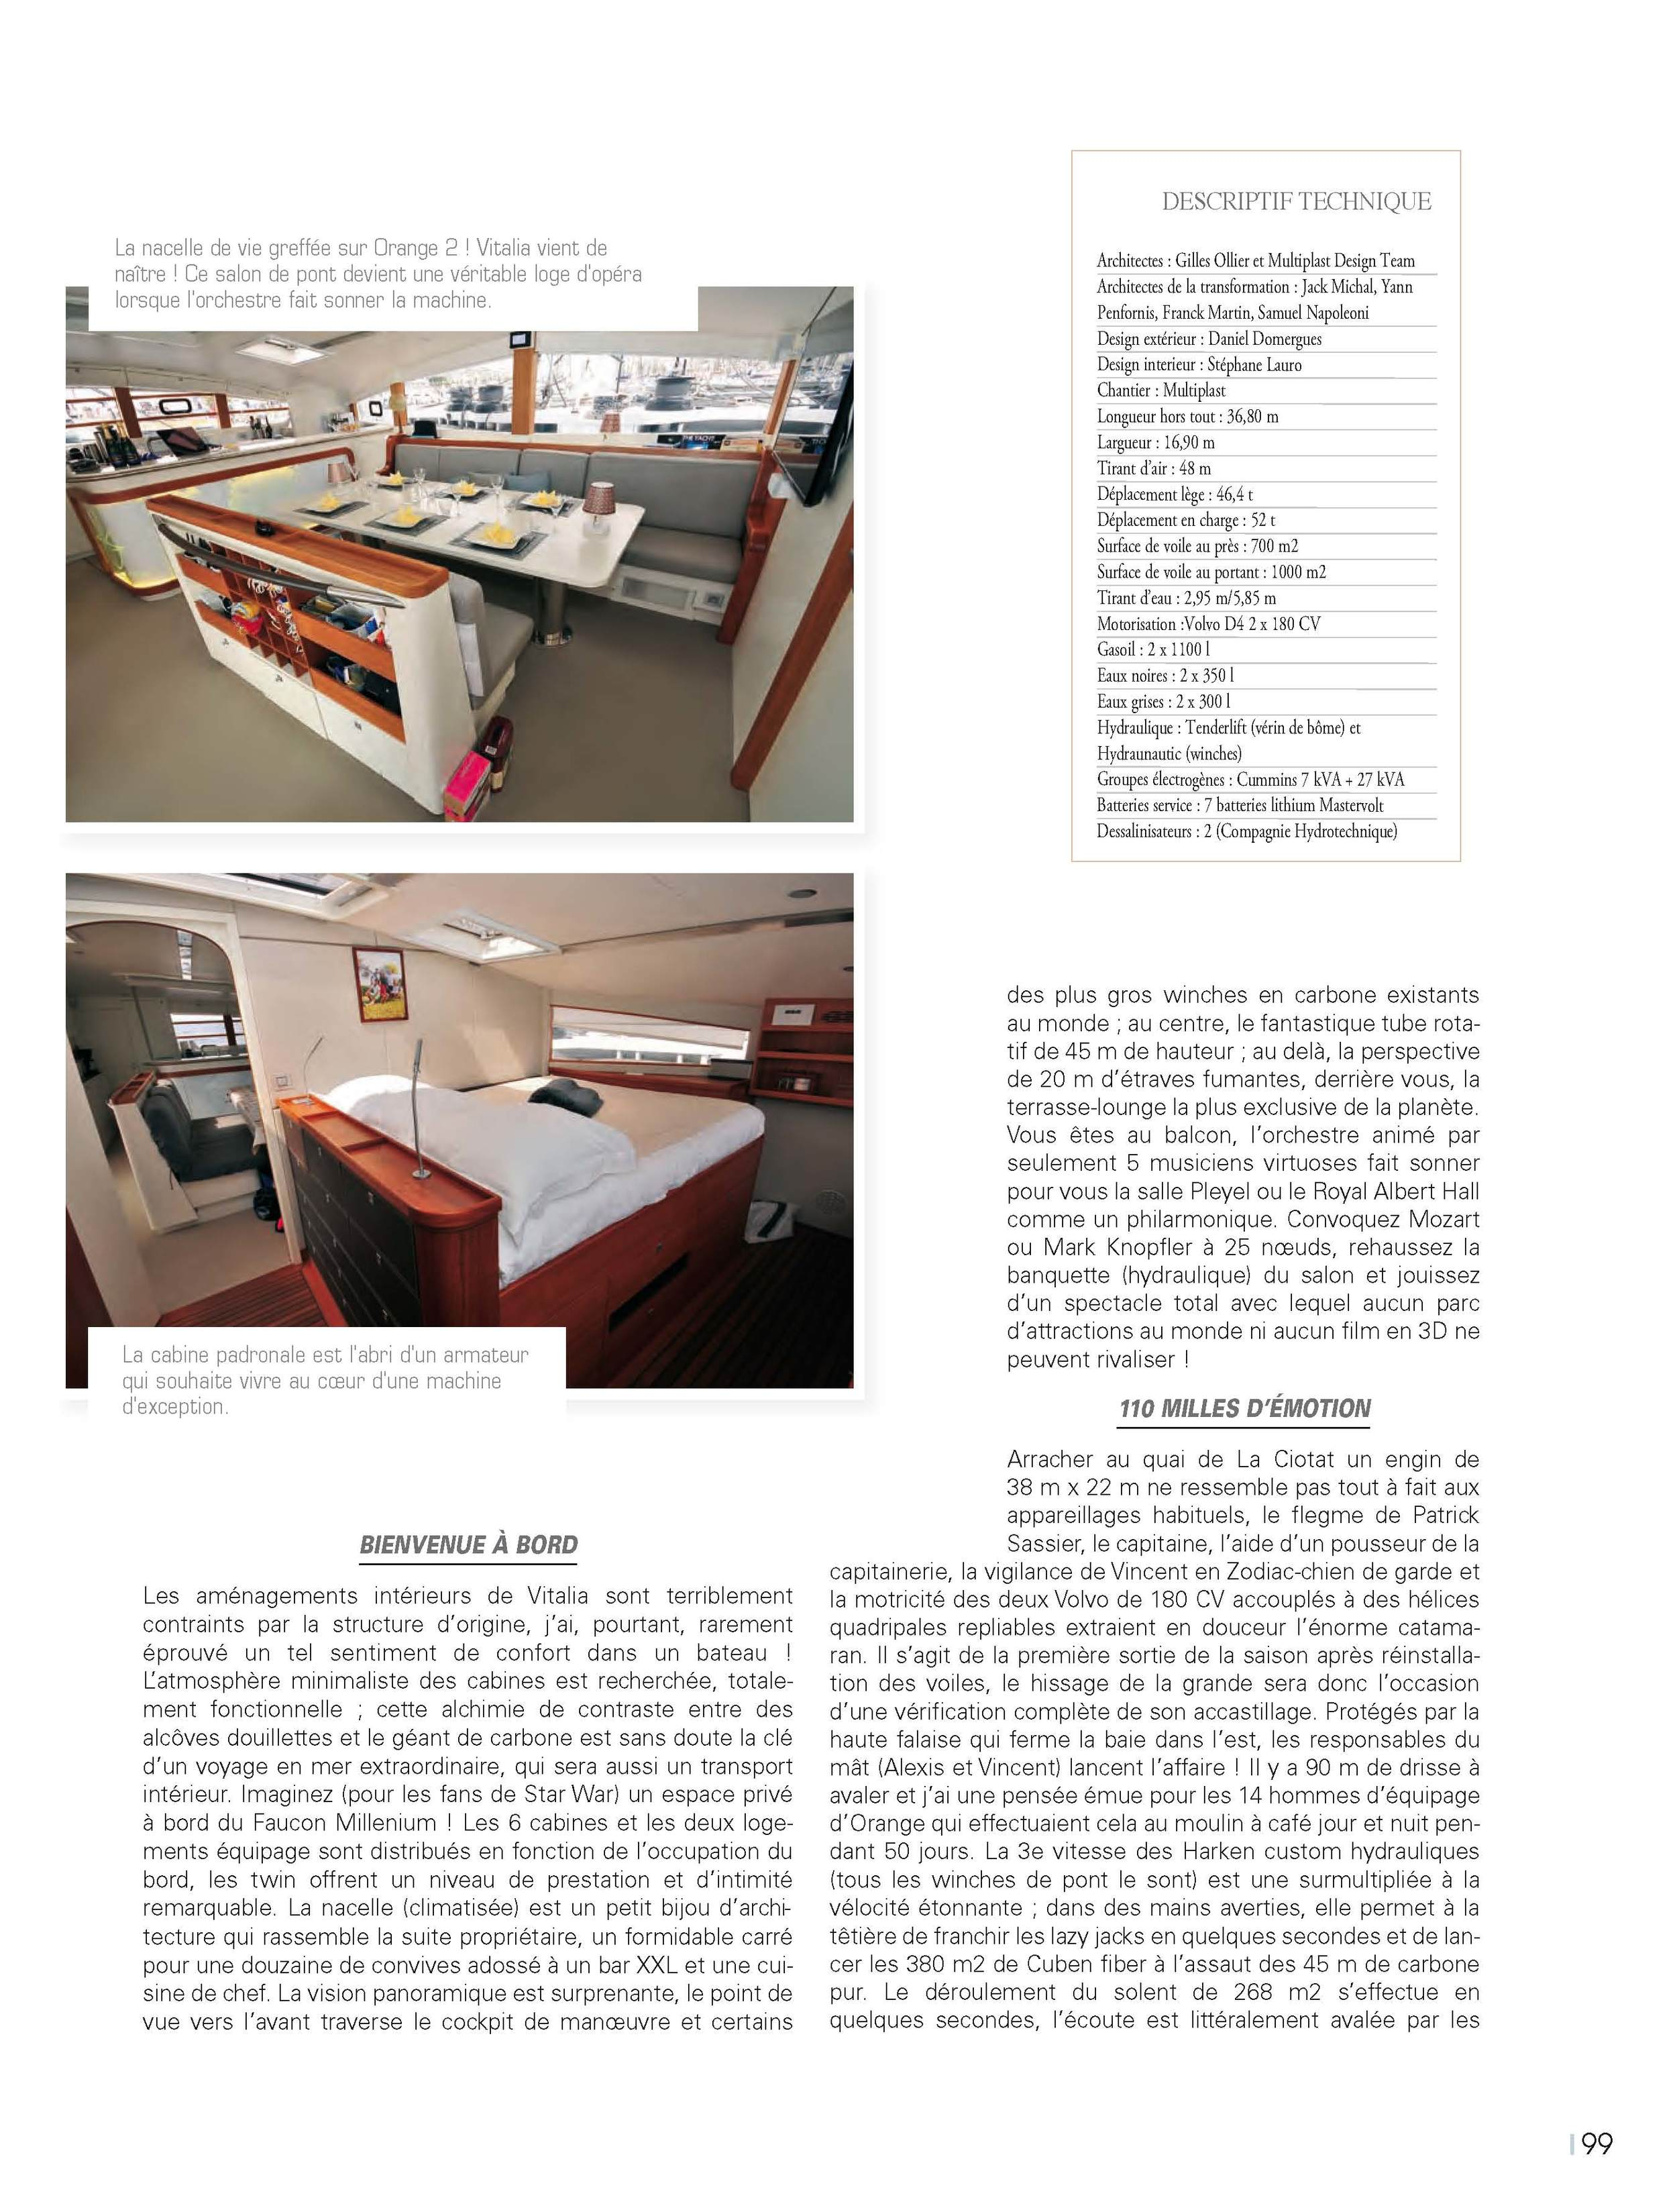 design-catamaran-vitalia-orange-agence-narrative